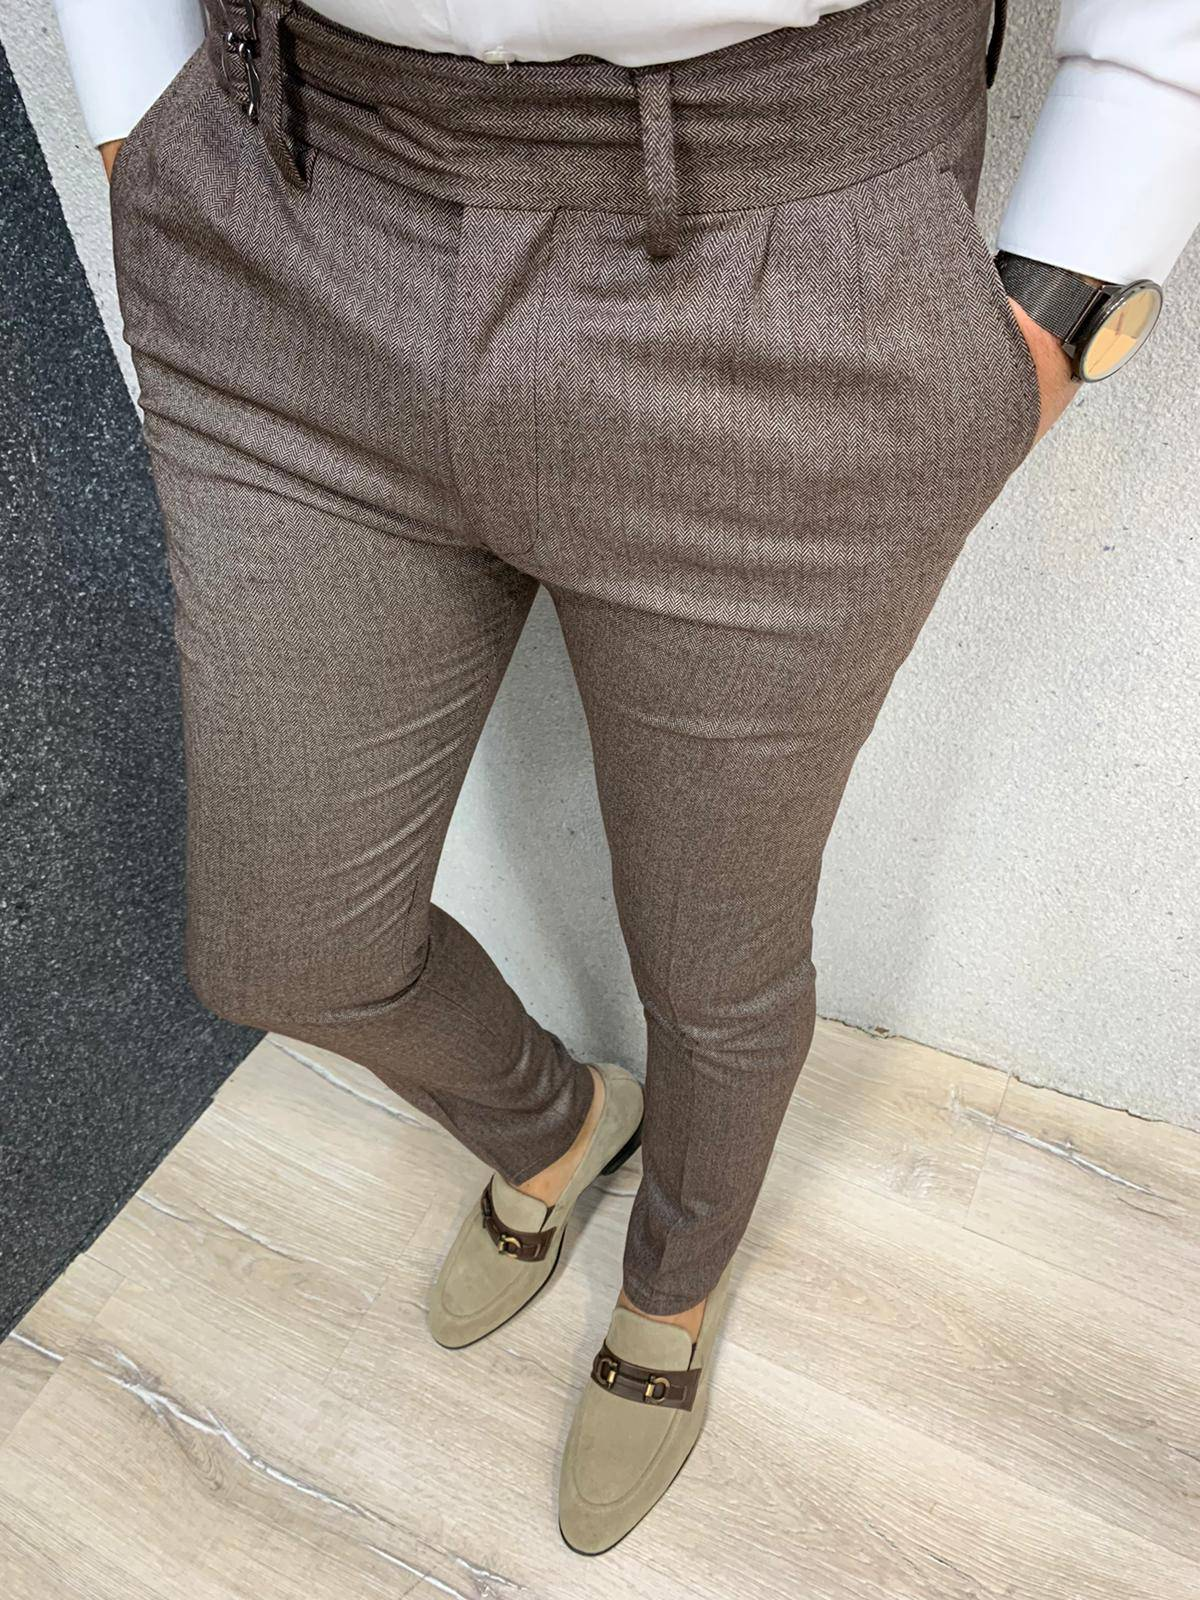 New Brown Canvas Pants